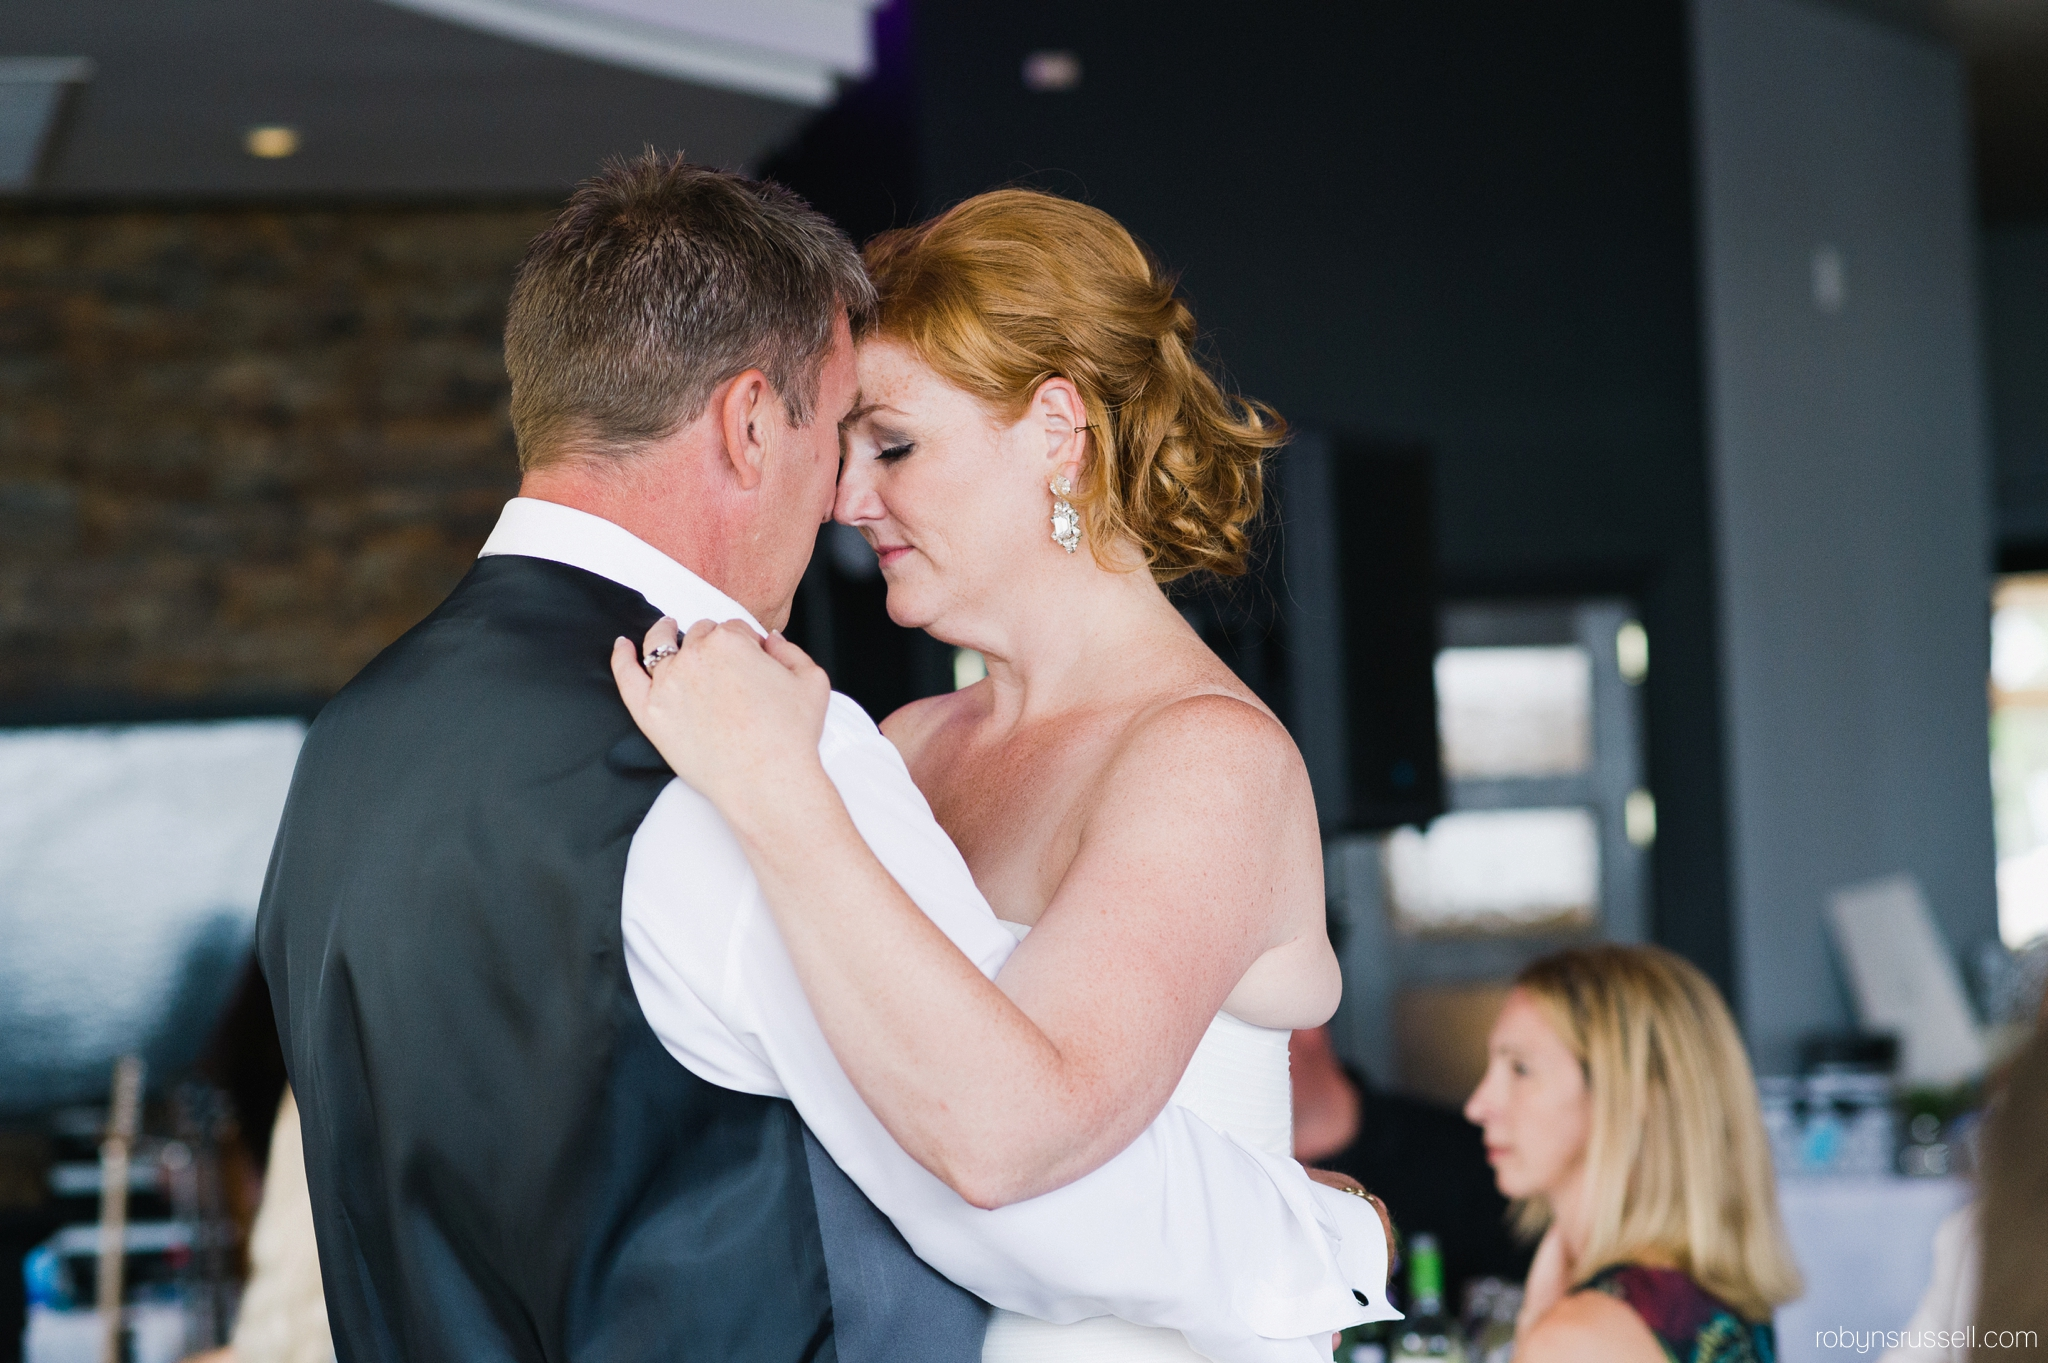 31-bride-and-groom-first-dance-harbour-banquet-center.jpg